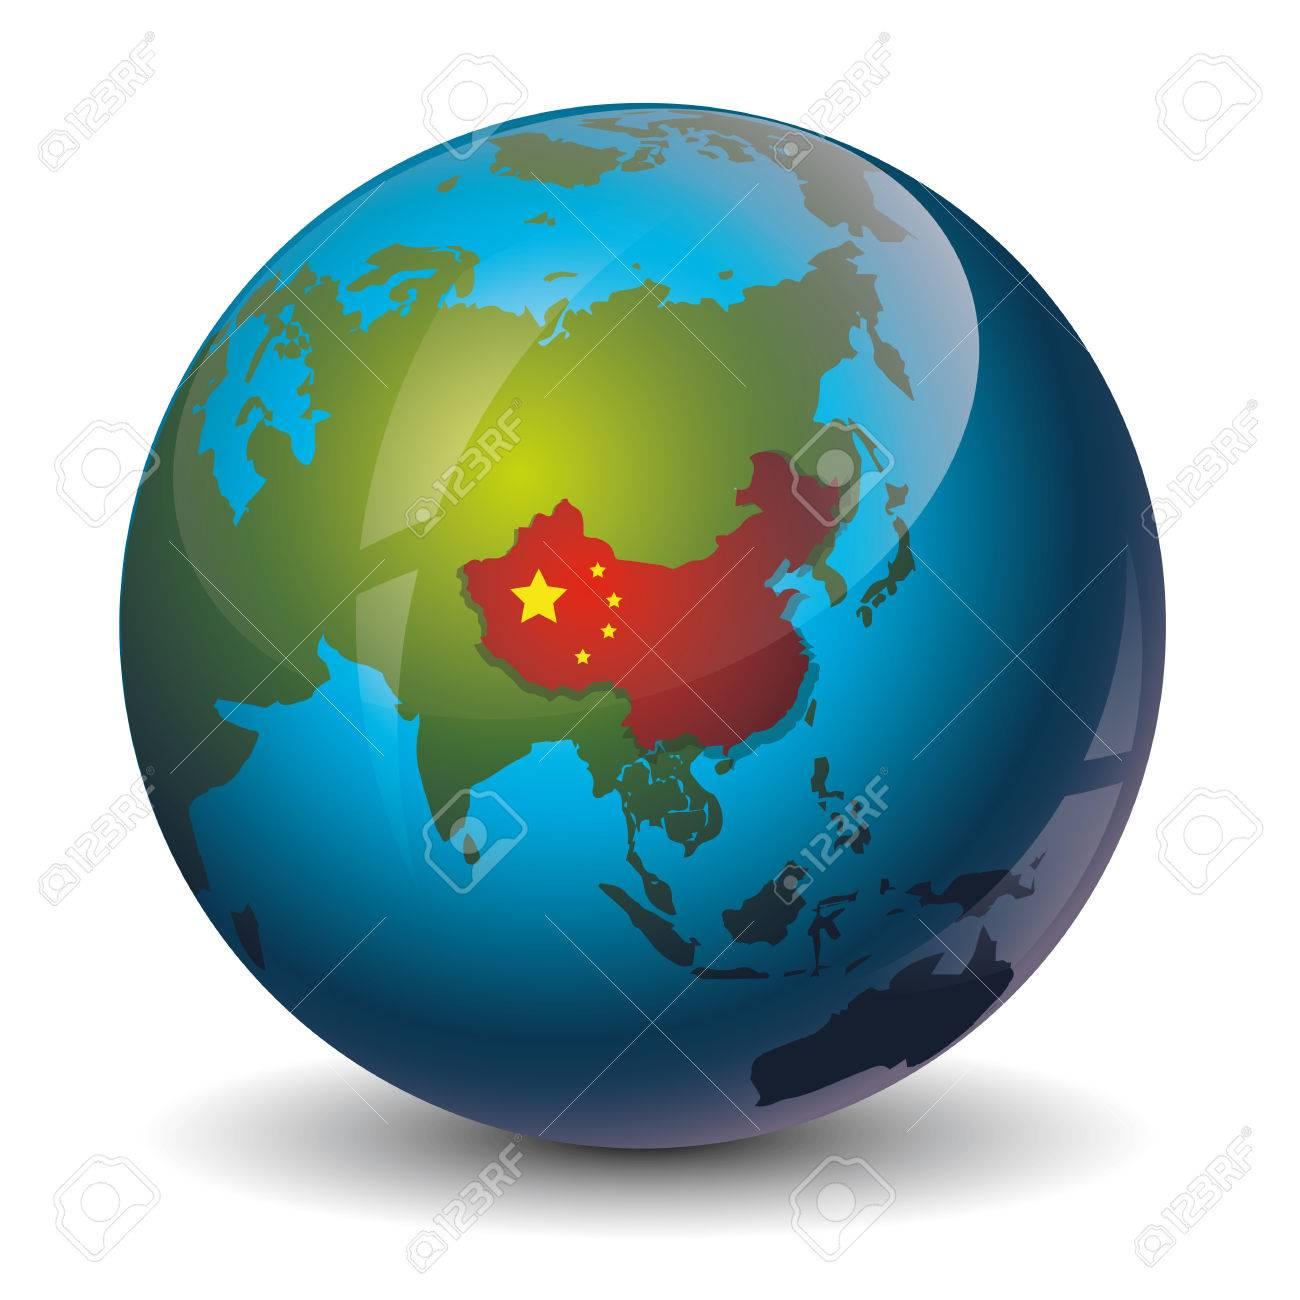 Icon of china map on the world map earth royalty free cliparts icon of china map on the world map earth stock vector 42030221 gumiabroncs Gallery